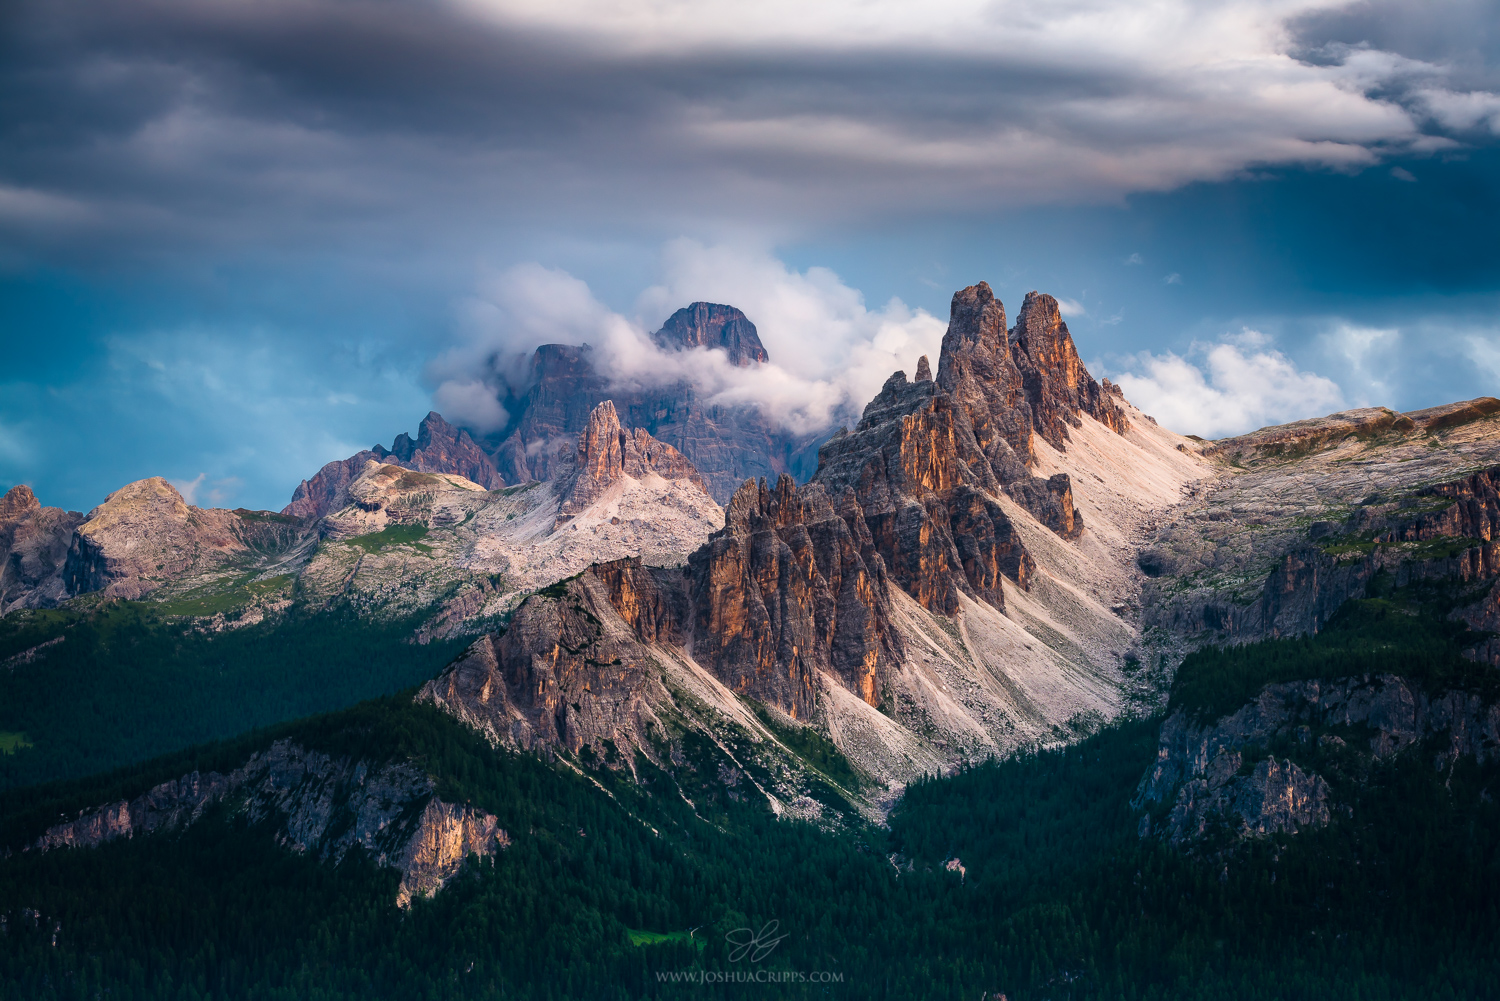 ITALIAN DOLOMITES - TIMELESS MAJESTYJoin us in the heart of summer as we disappear into the untouched sweeping wilderness of the Dolomites. These jagged peaks in Northern Italy are infamous for being some of the most beautiful mountain ranges on Earth, with spectacular vertical pinnacles, twisting spires and ethereal heights. We'll be venturing deep into the isolated Marmole group, and will spend two nights camping out in the forest under the open stars.Picturesque alpine hikes, fireside ceremonies, rock climbing and many other forms of magic and nature connection await.On our final evening, we will emerge back into civilization to the picturesque town of Cortina D'Ampezzo. Nestled in an alpine valley on the banks of the Boite river and home to many local artisans and craftsmen, this is the perfect place to celebrate our adventure before heading home.